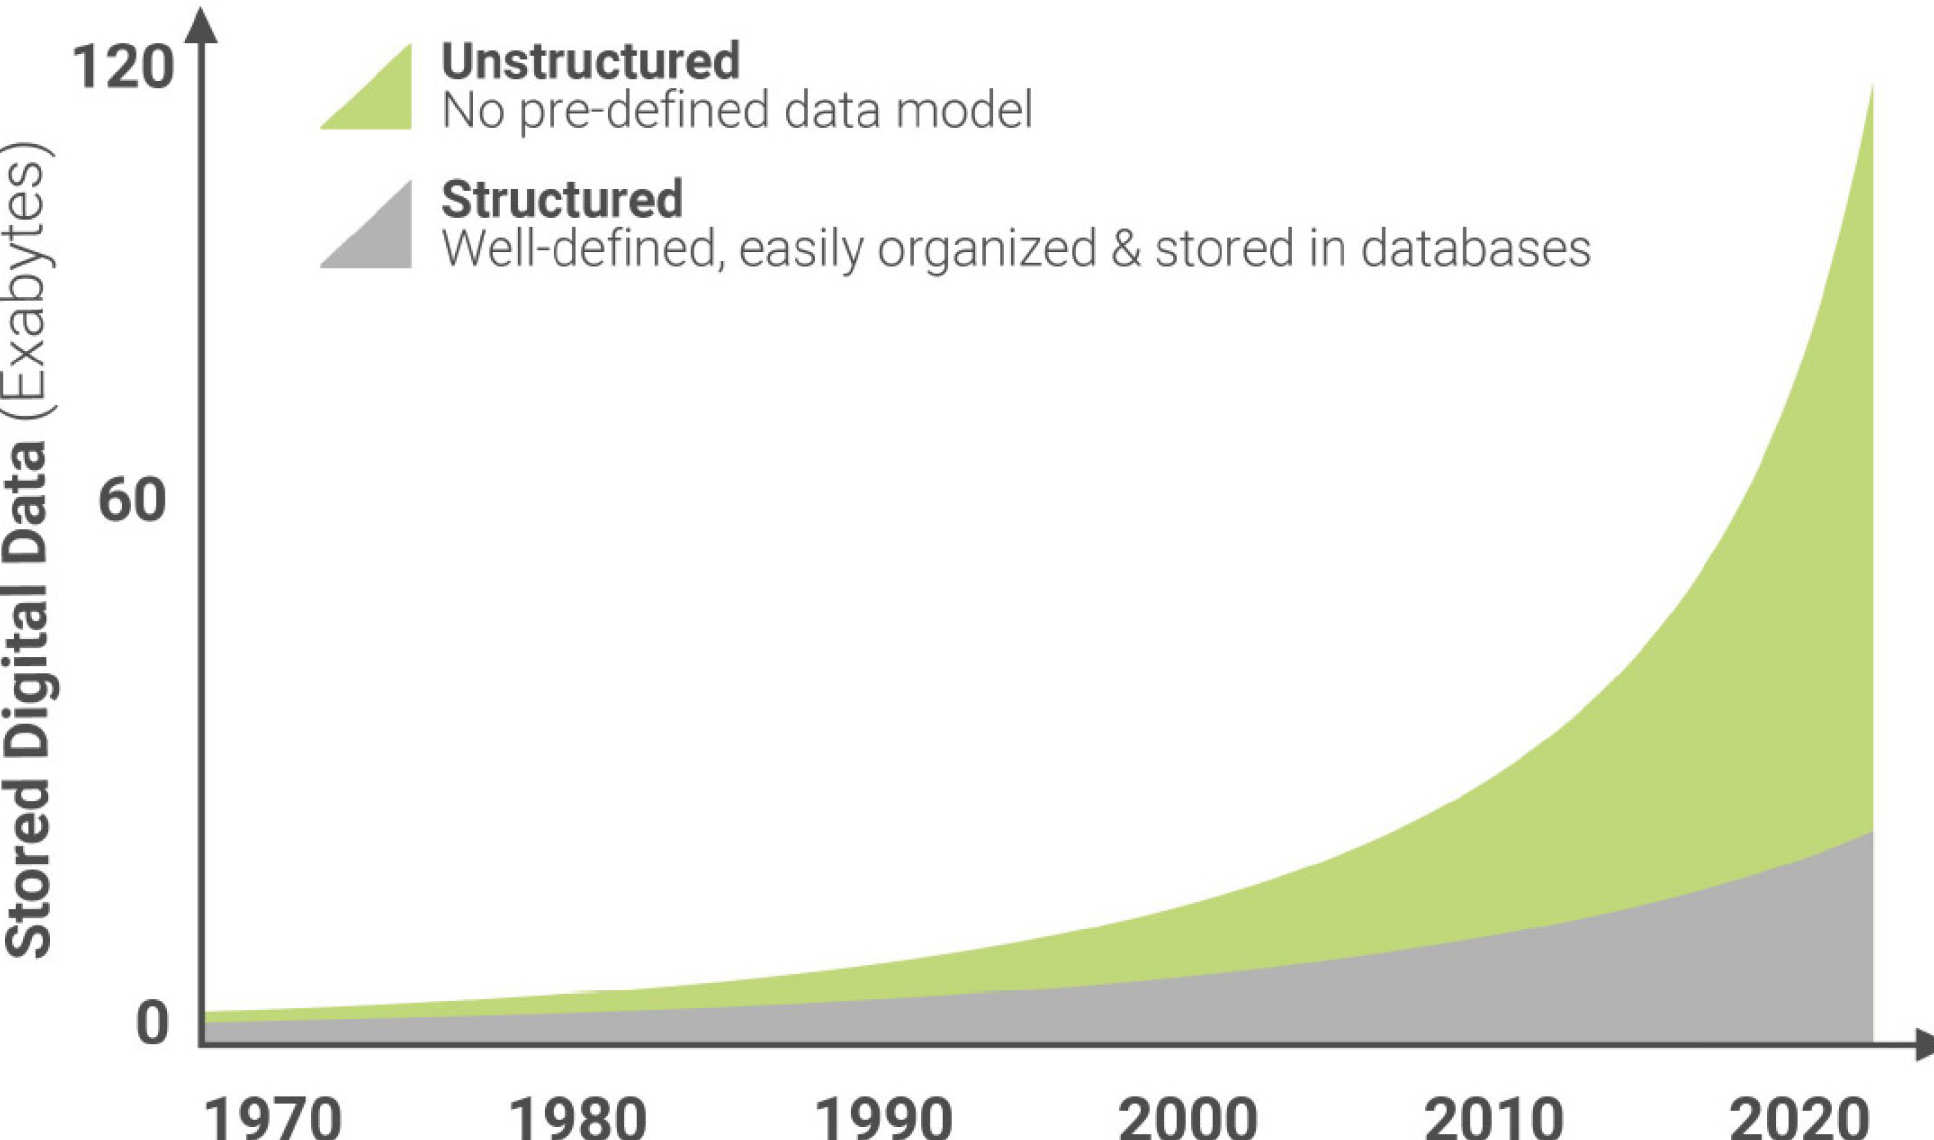 Data graph shows huge increase in unstructured data